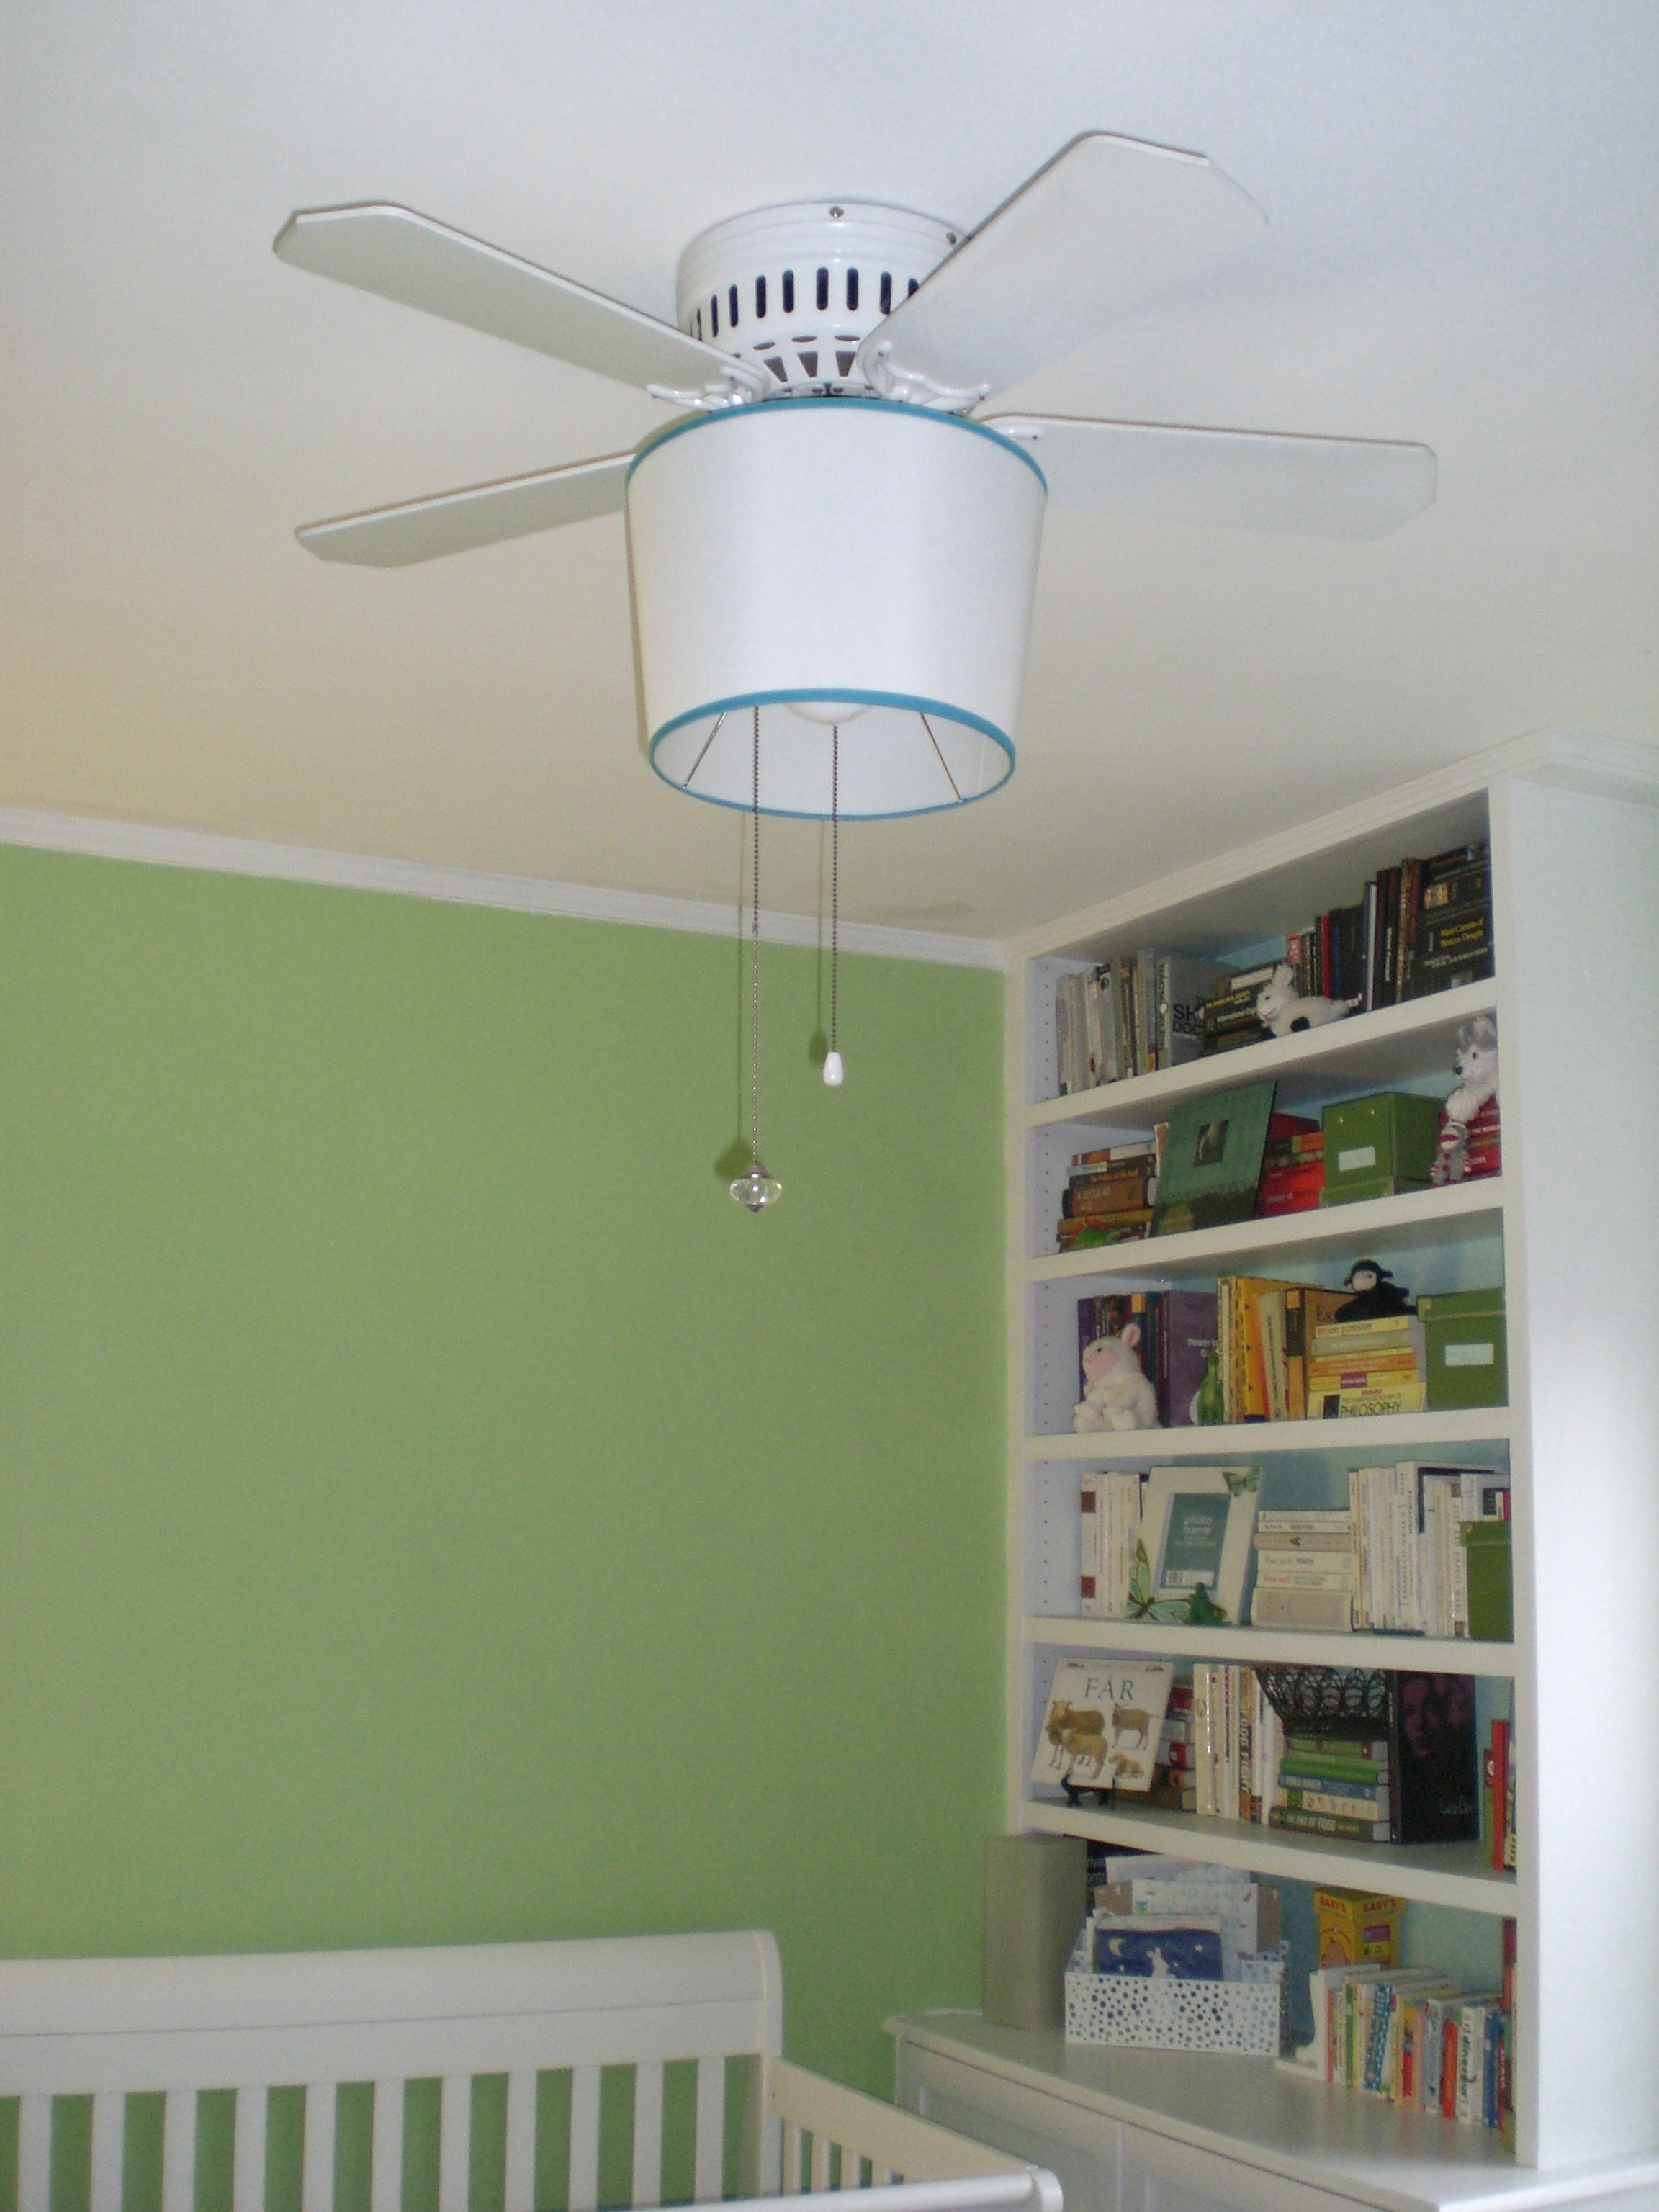 Updating the nursery ceiling fan with a shade